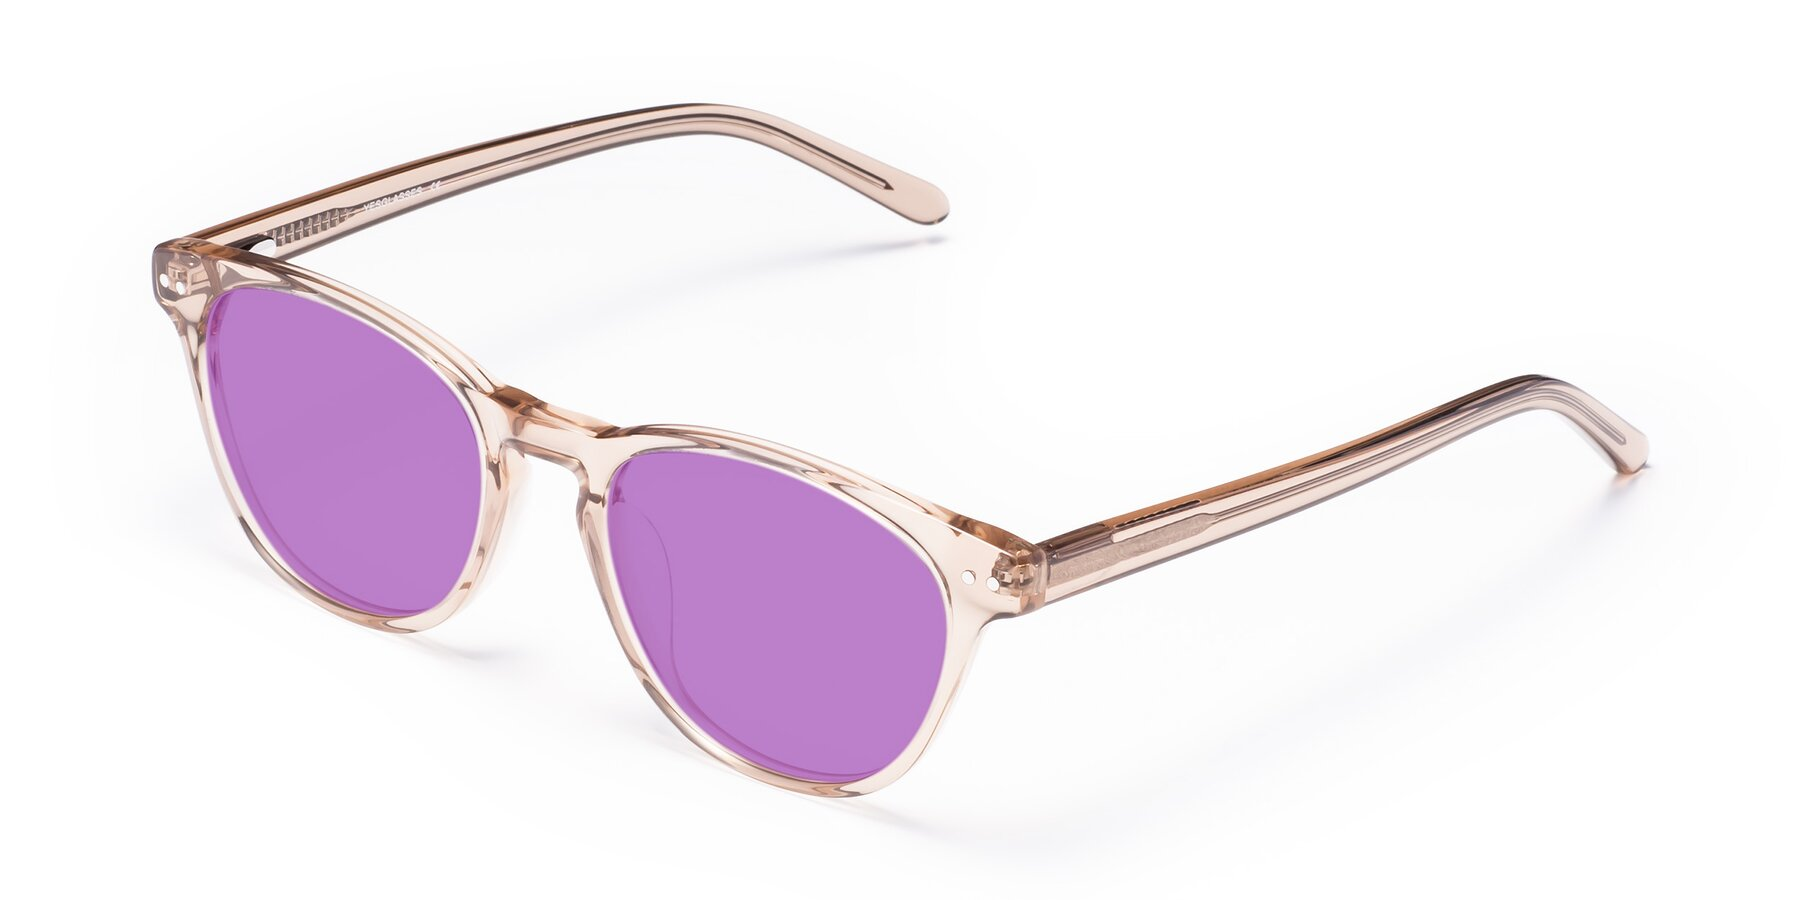 Angle of Blaze in light Brown with Medium Purple Tinted Lenses